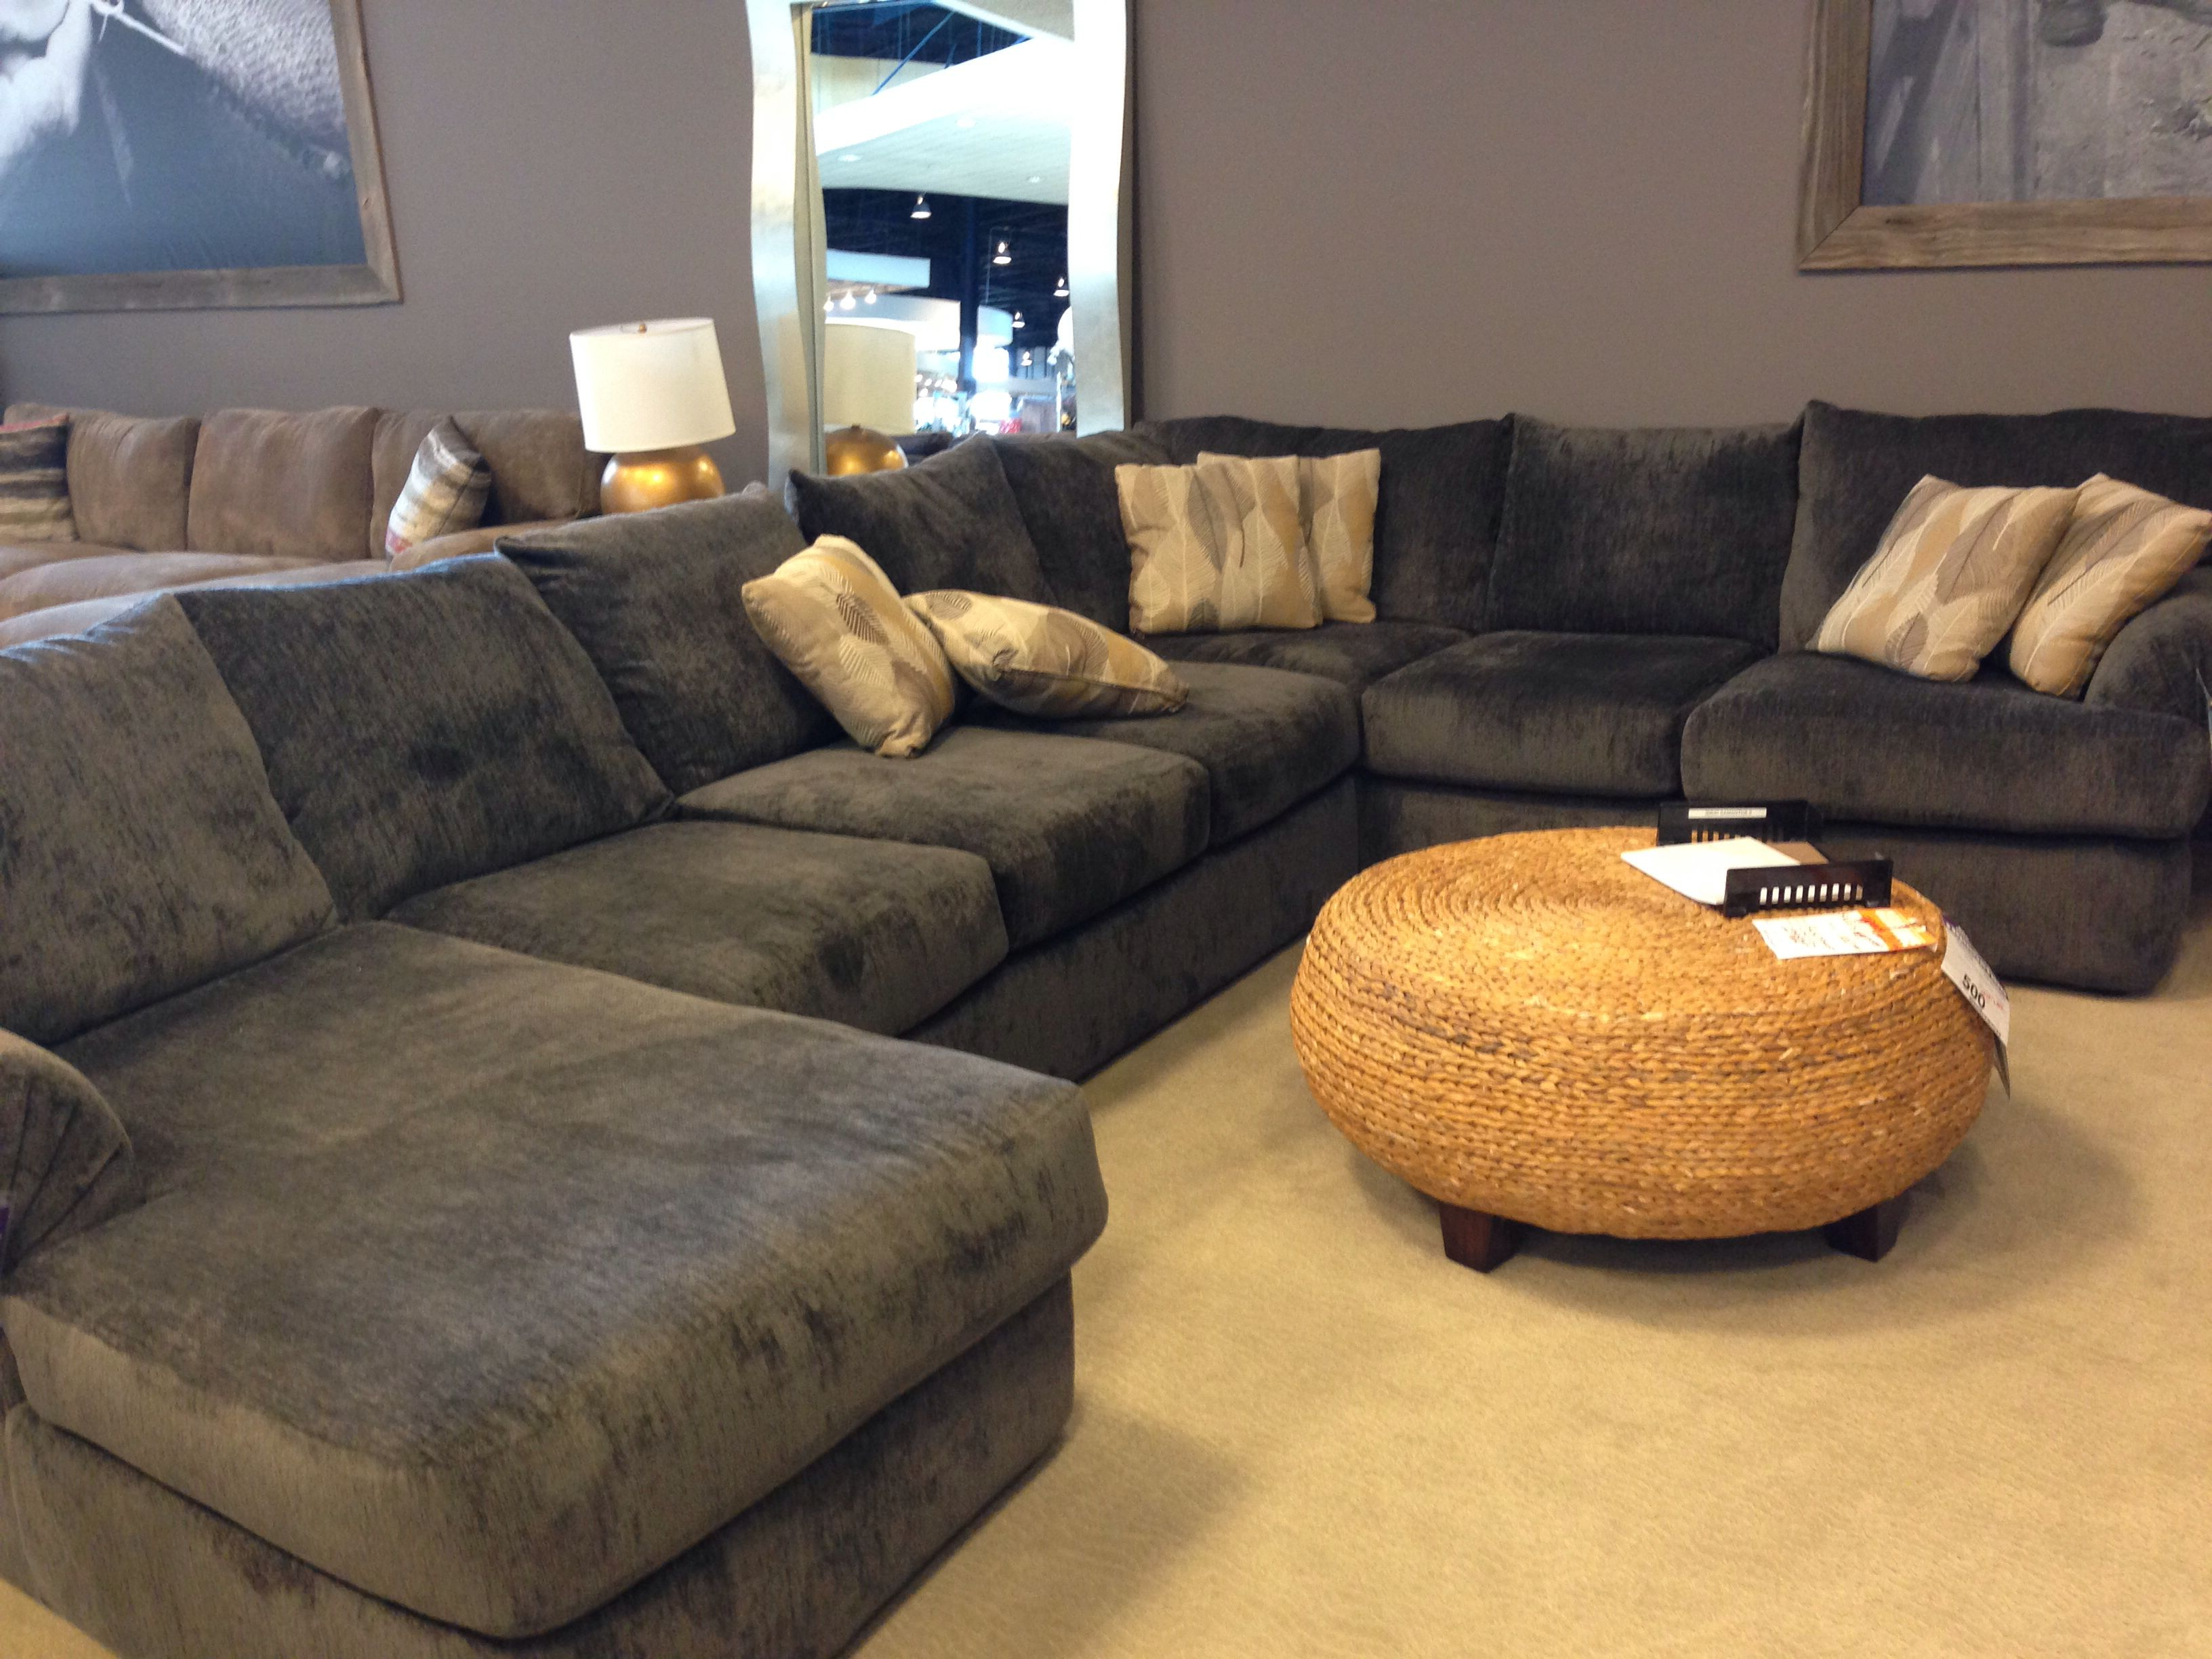 Big Save Sofa Bed Art Van Furniture Leather Sofas Couch In The Basement Ideas Pinterest